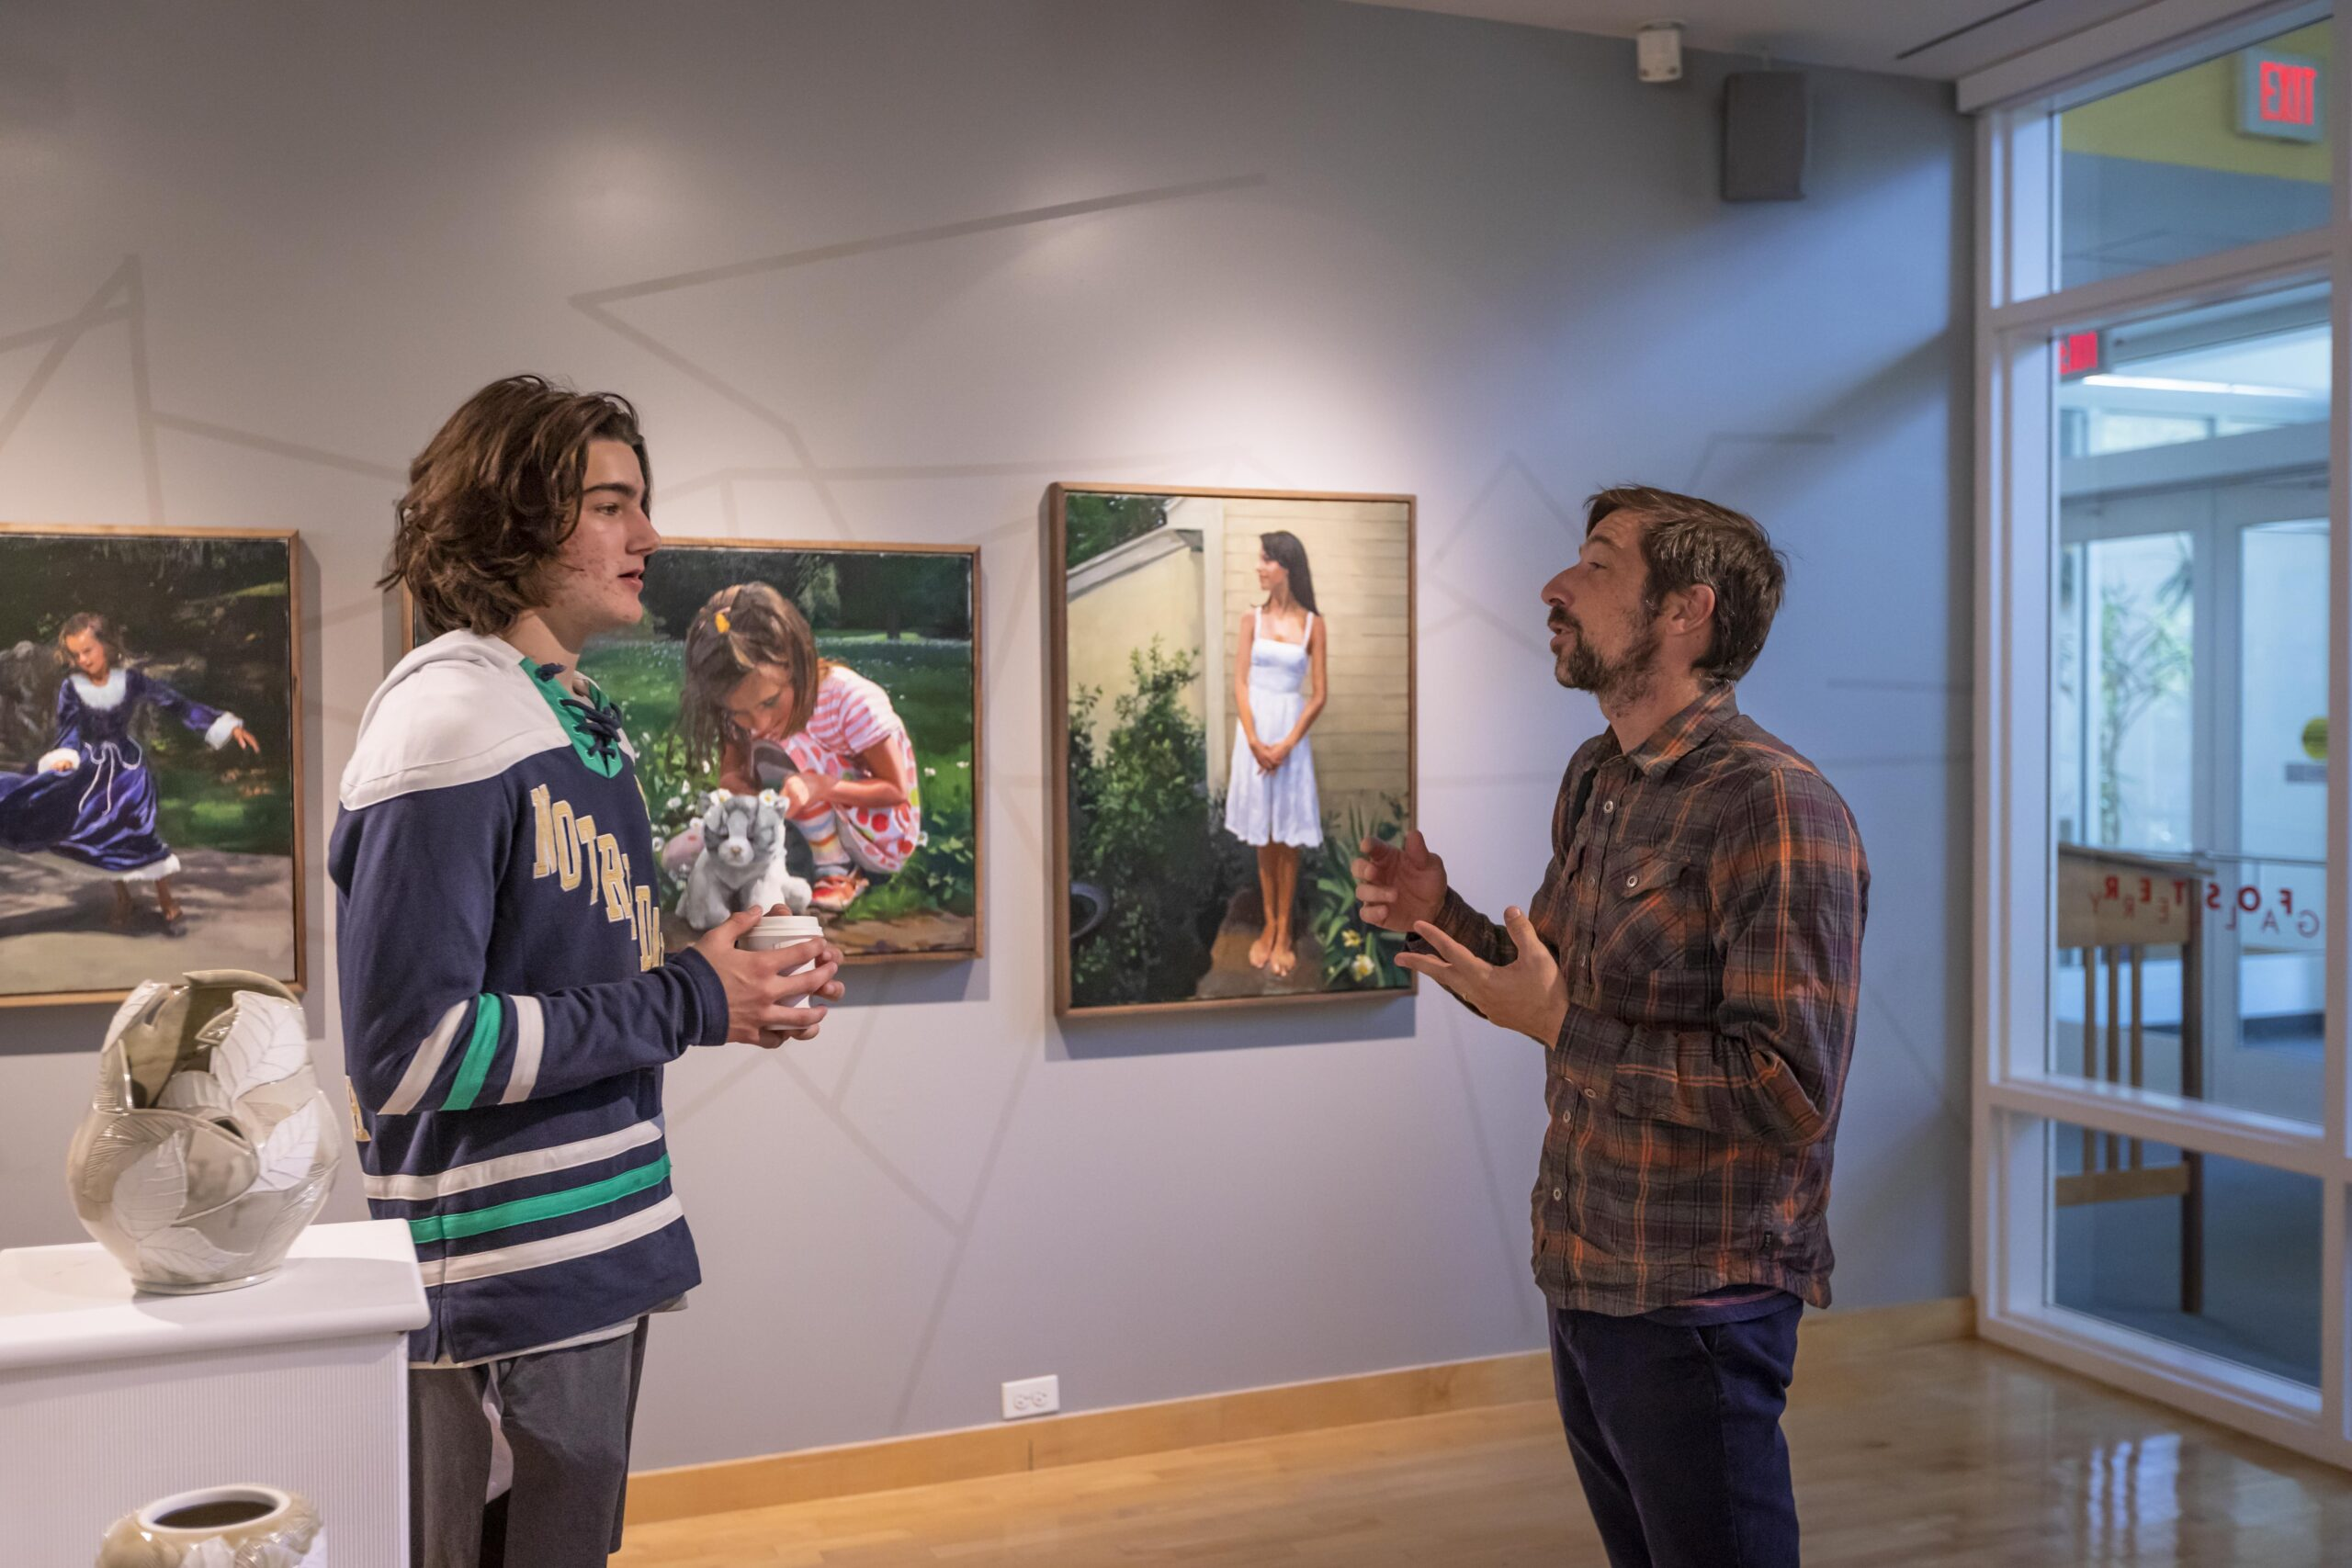 2021 Visual Arts Faculty Show in Foster Gallery